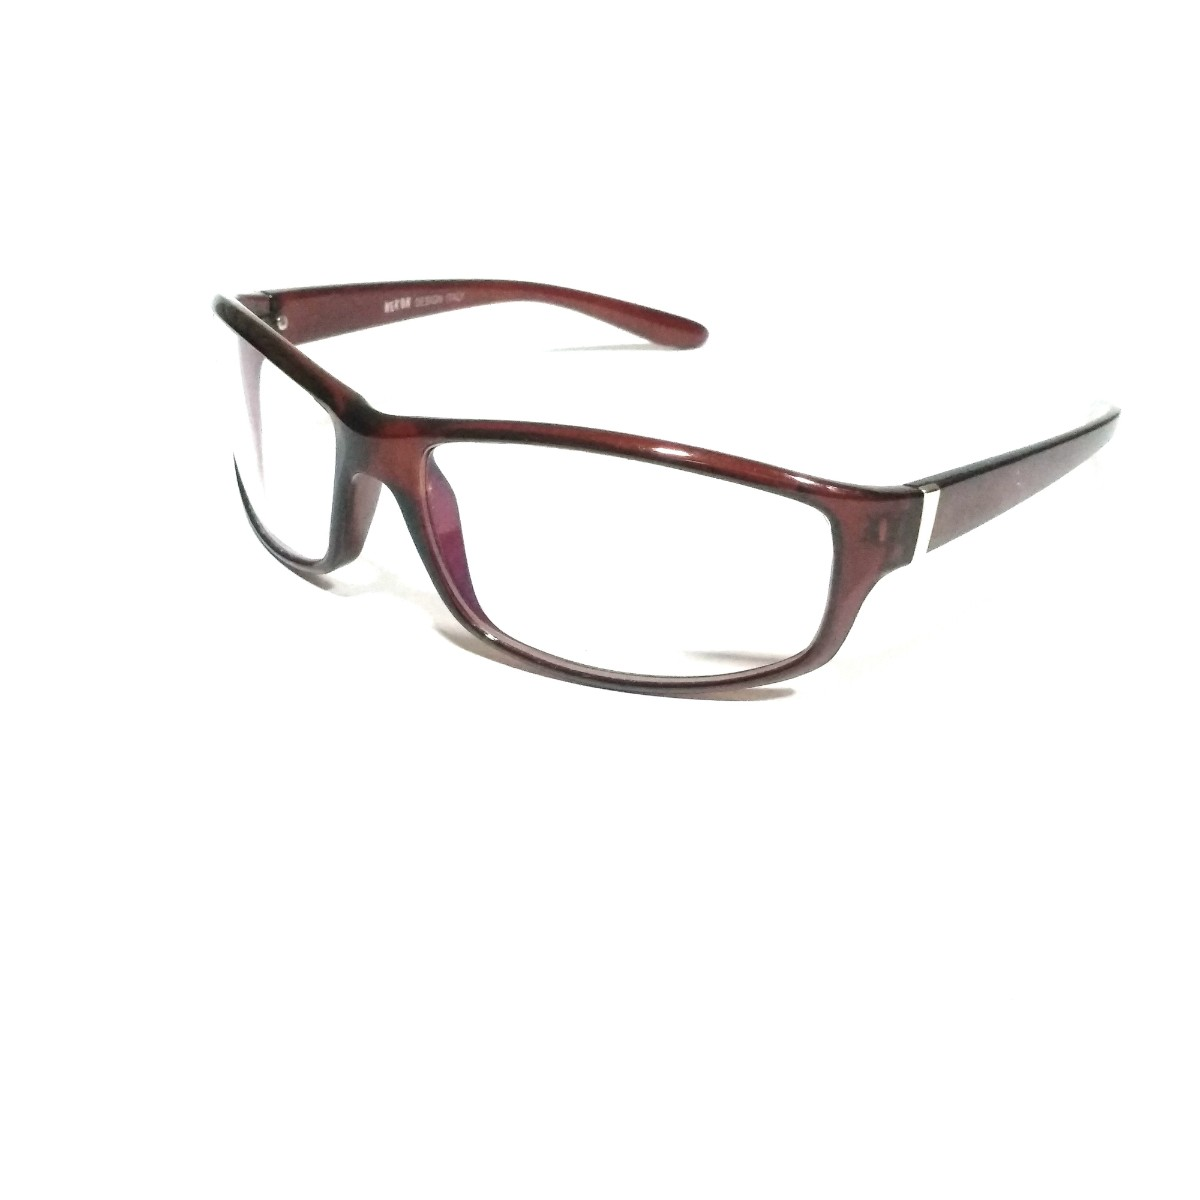 Sigma Night Driving Clear Sunglasses with Ant glare Coating 6004brclr